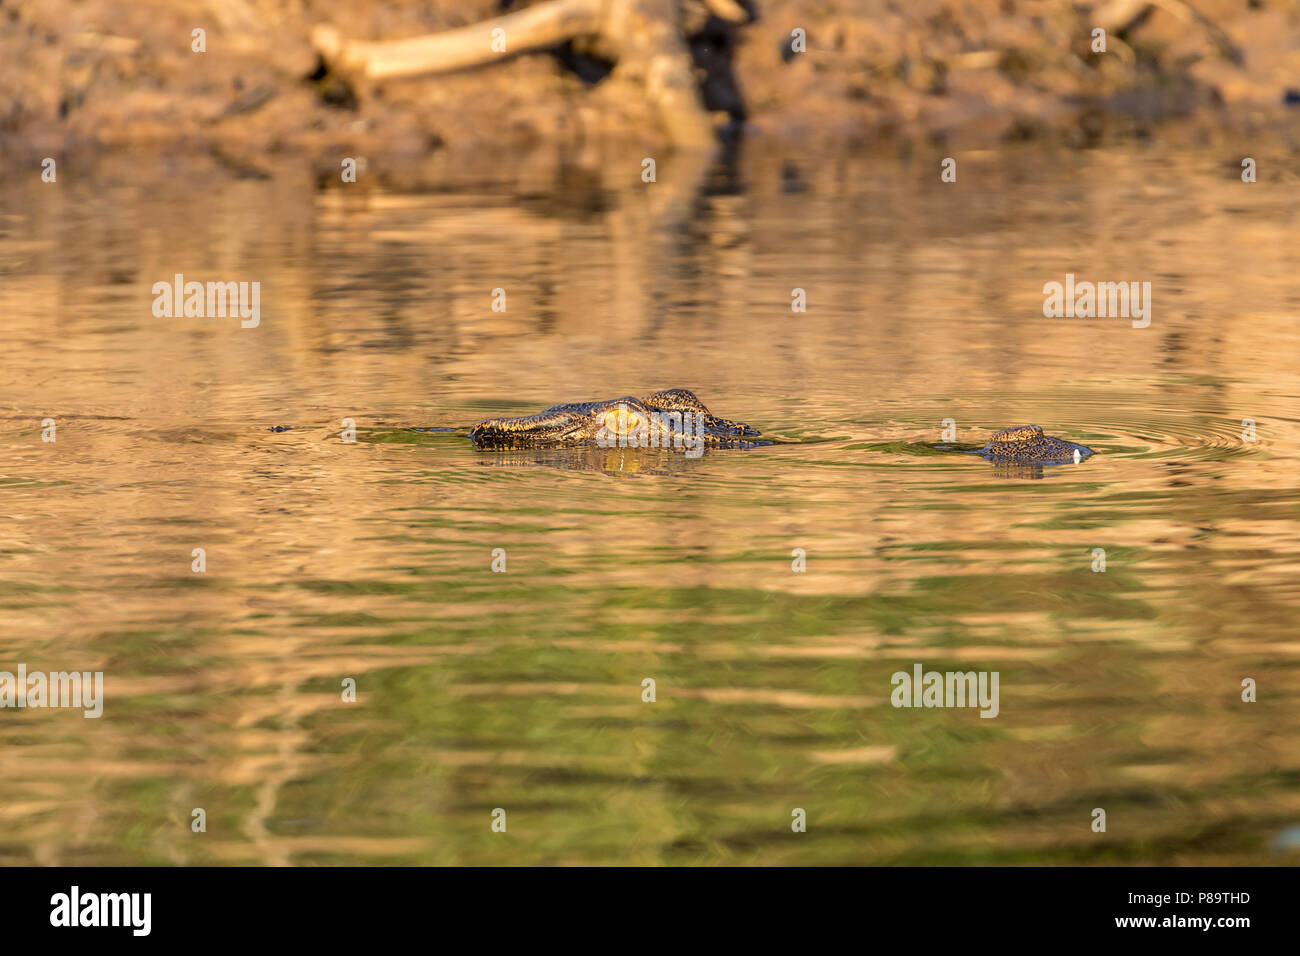 Saltwater crocodile in Corroboree Billabong, Mary River Wetlands, Northern Territory Stock Photo